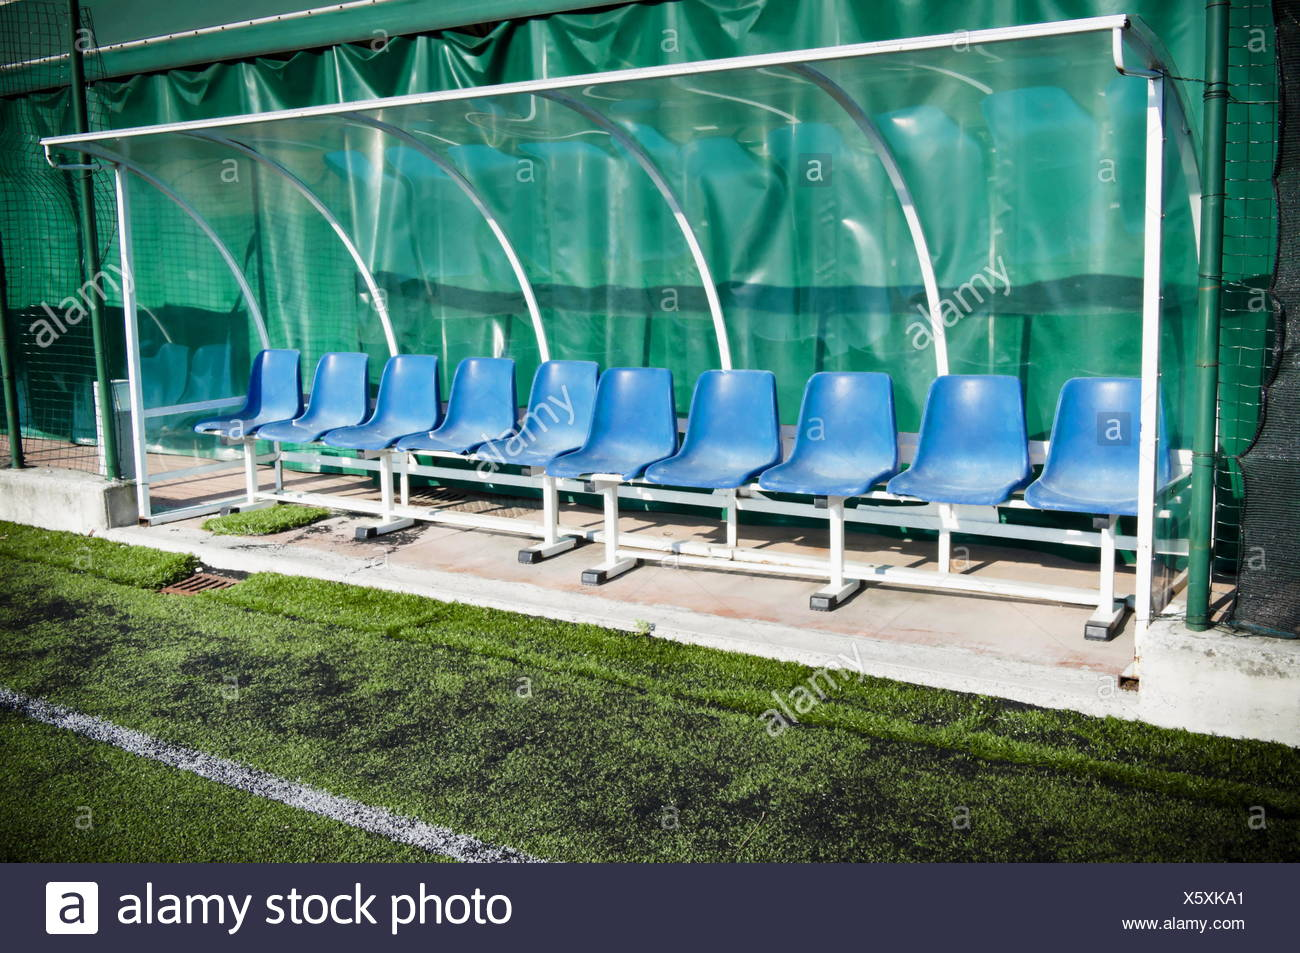 Coach and reserve benches in a soccer field - Stock Image